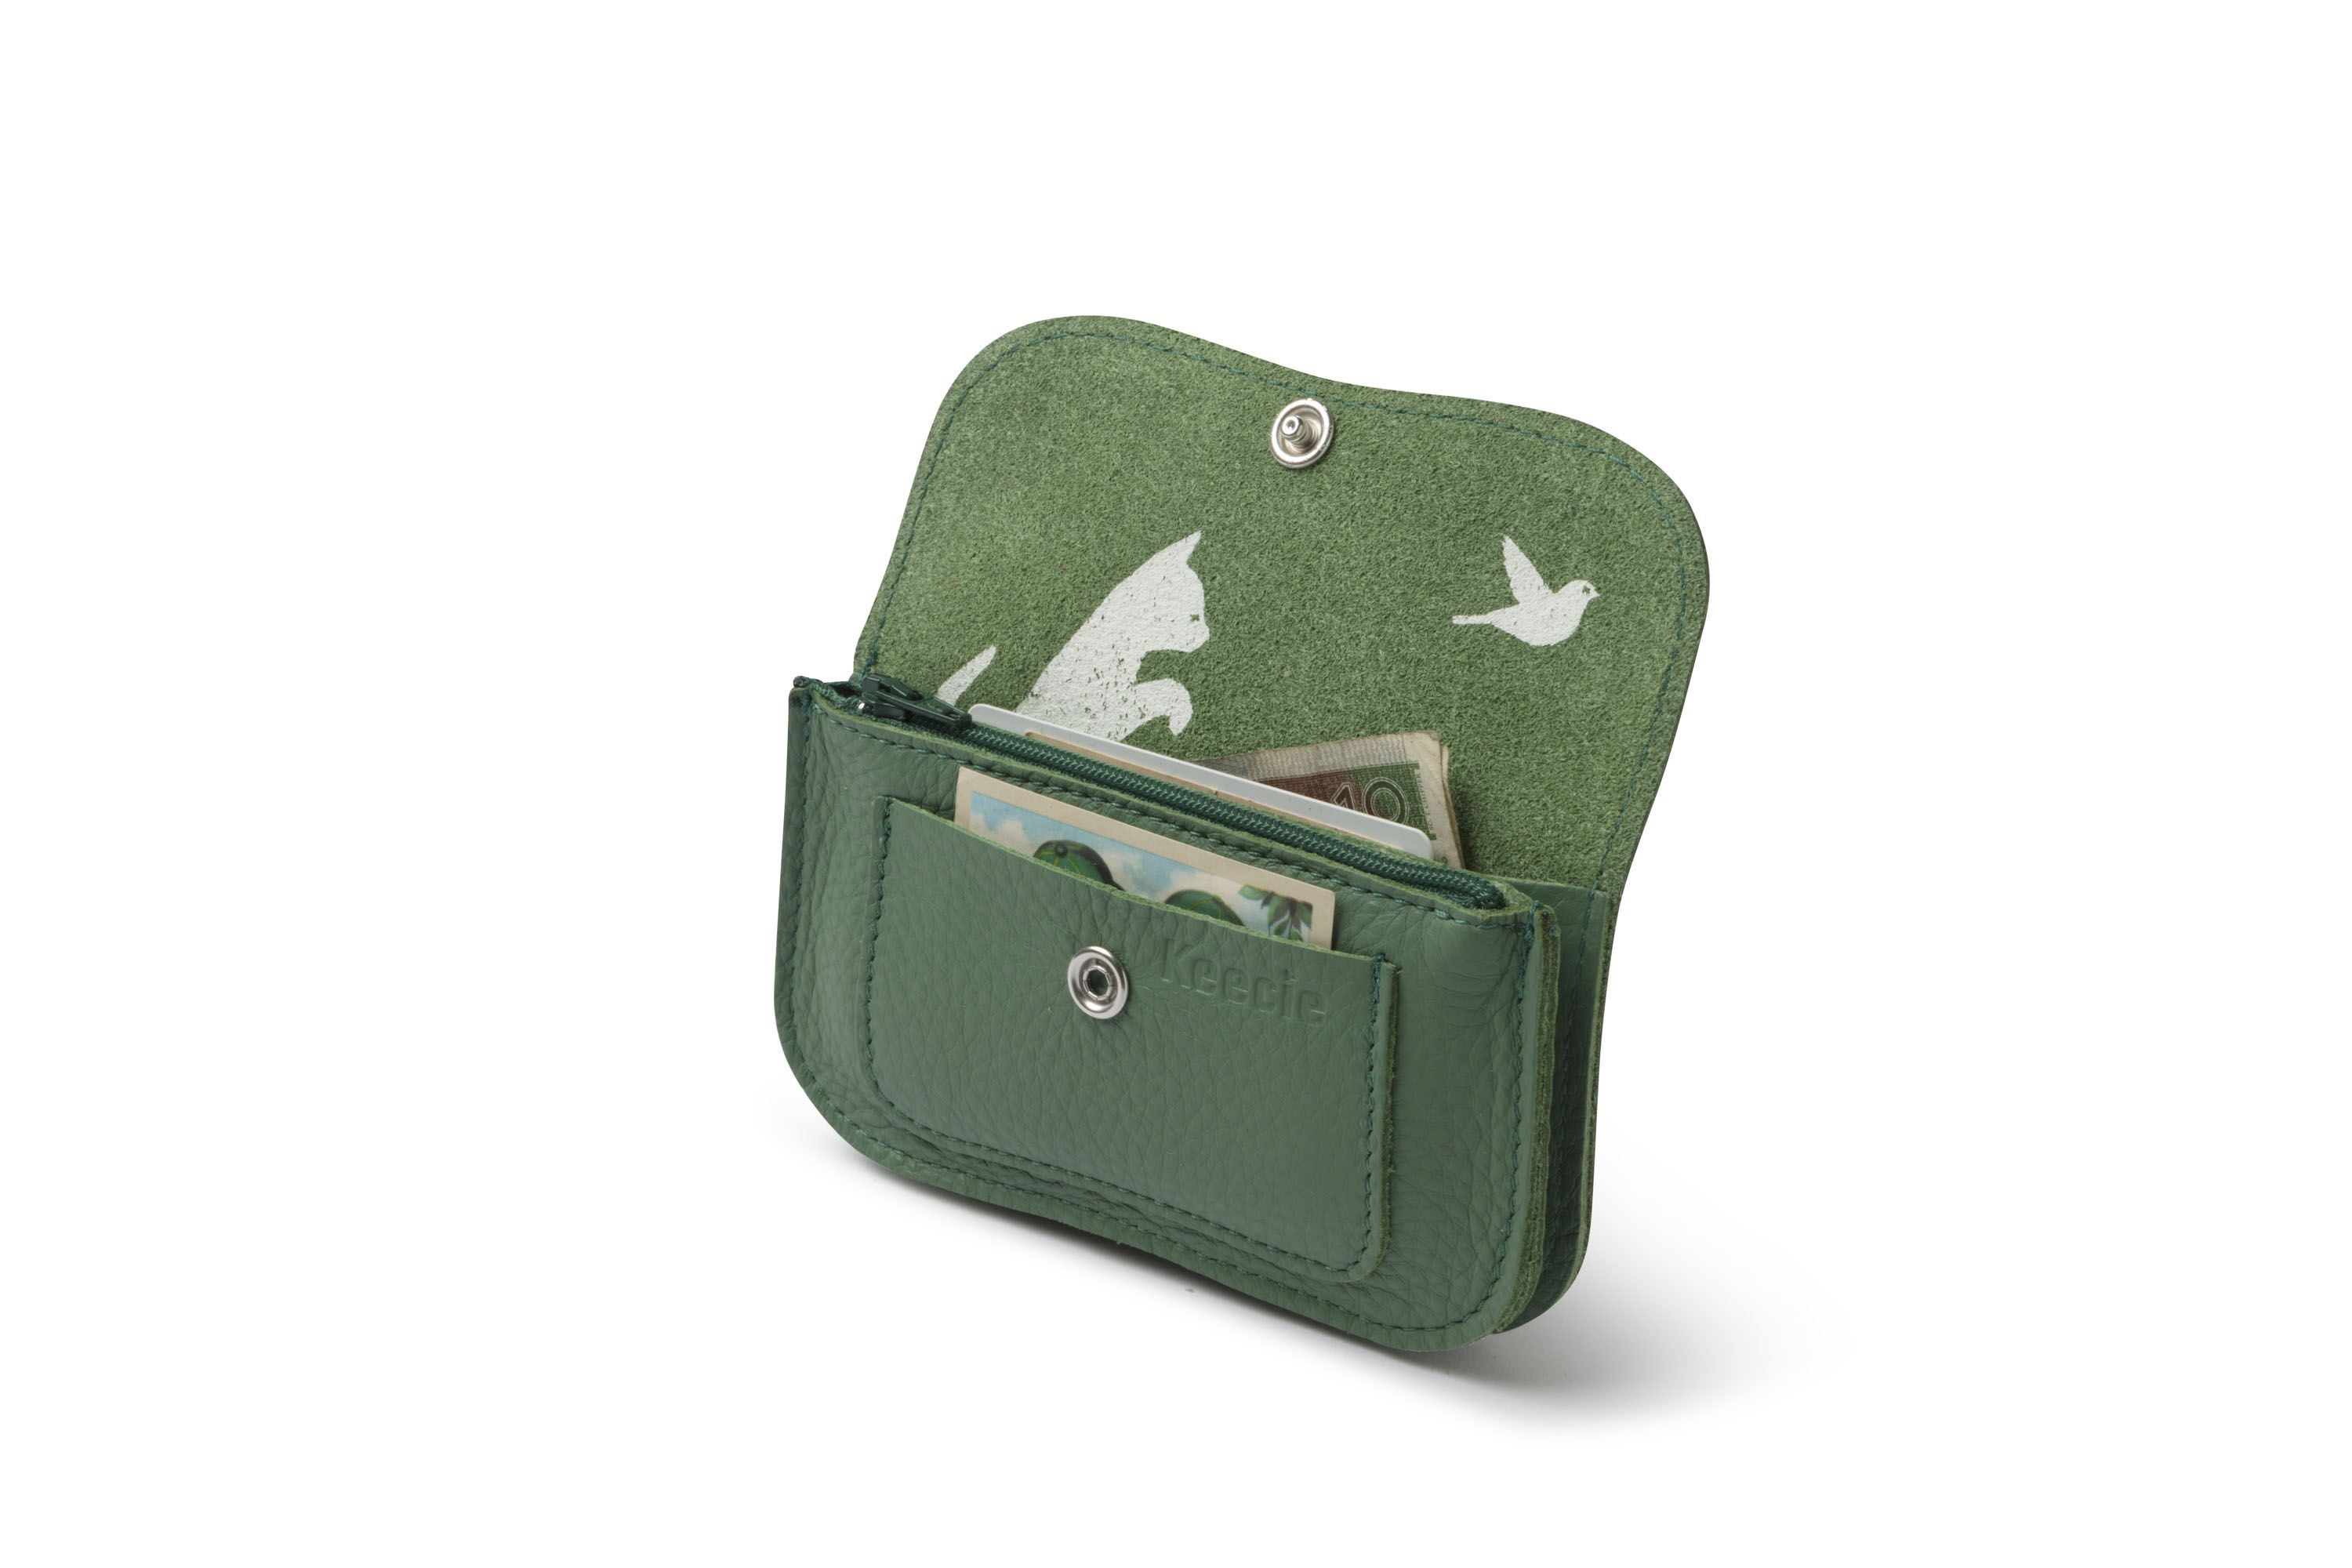 5d58735129b Keecie - Cat chase Small leather wallet in forest | wallets for women |  handmade wallet | leather wallet | portemonnee leer | womens fashion  accessories ...